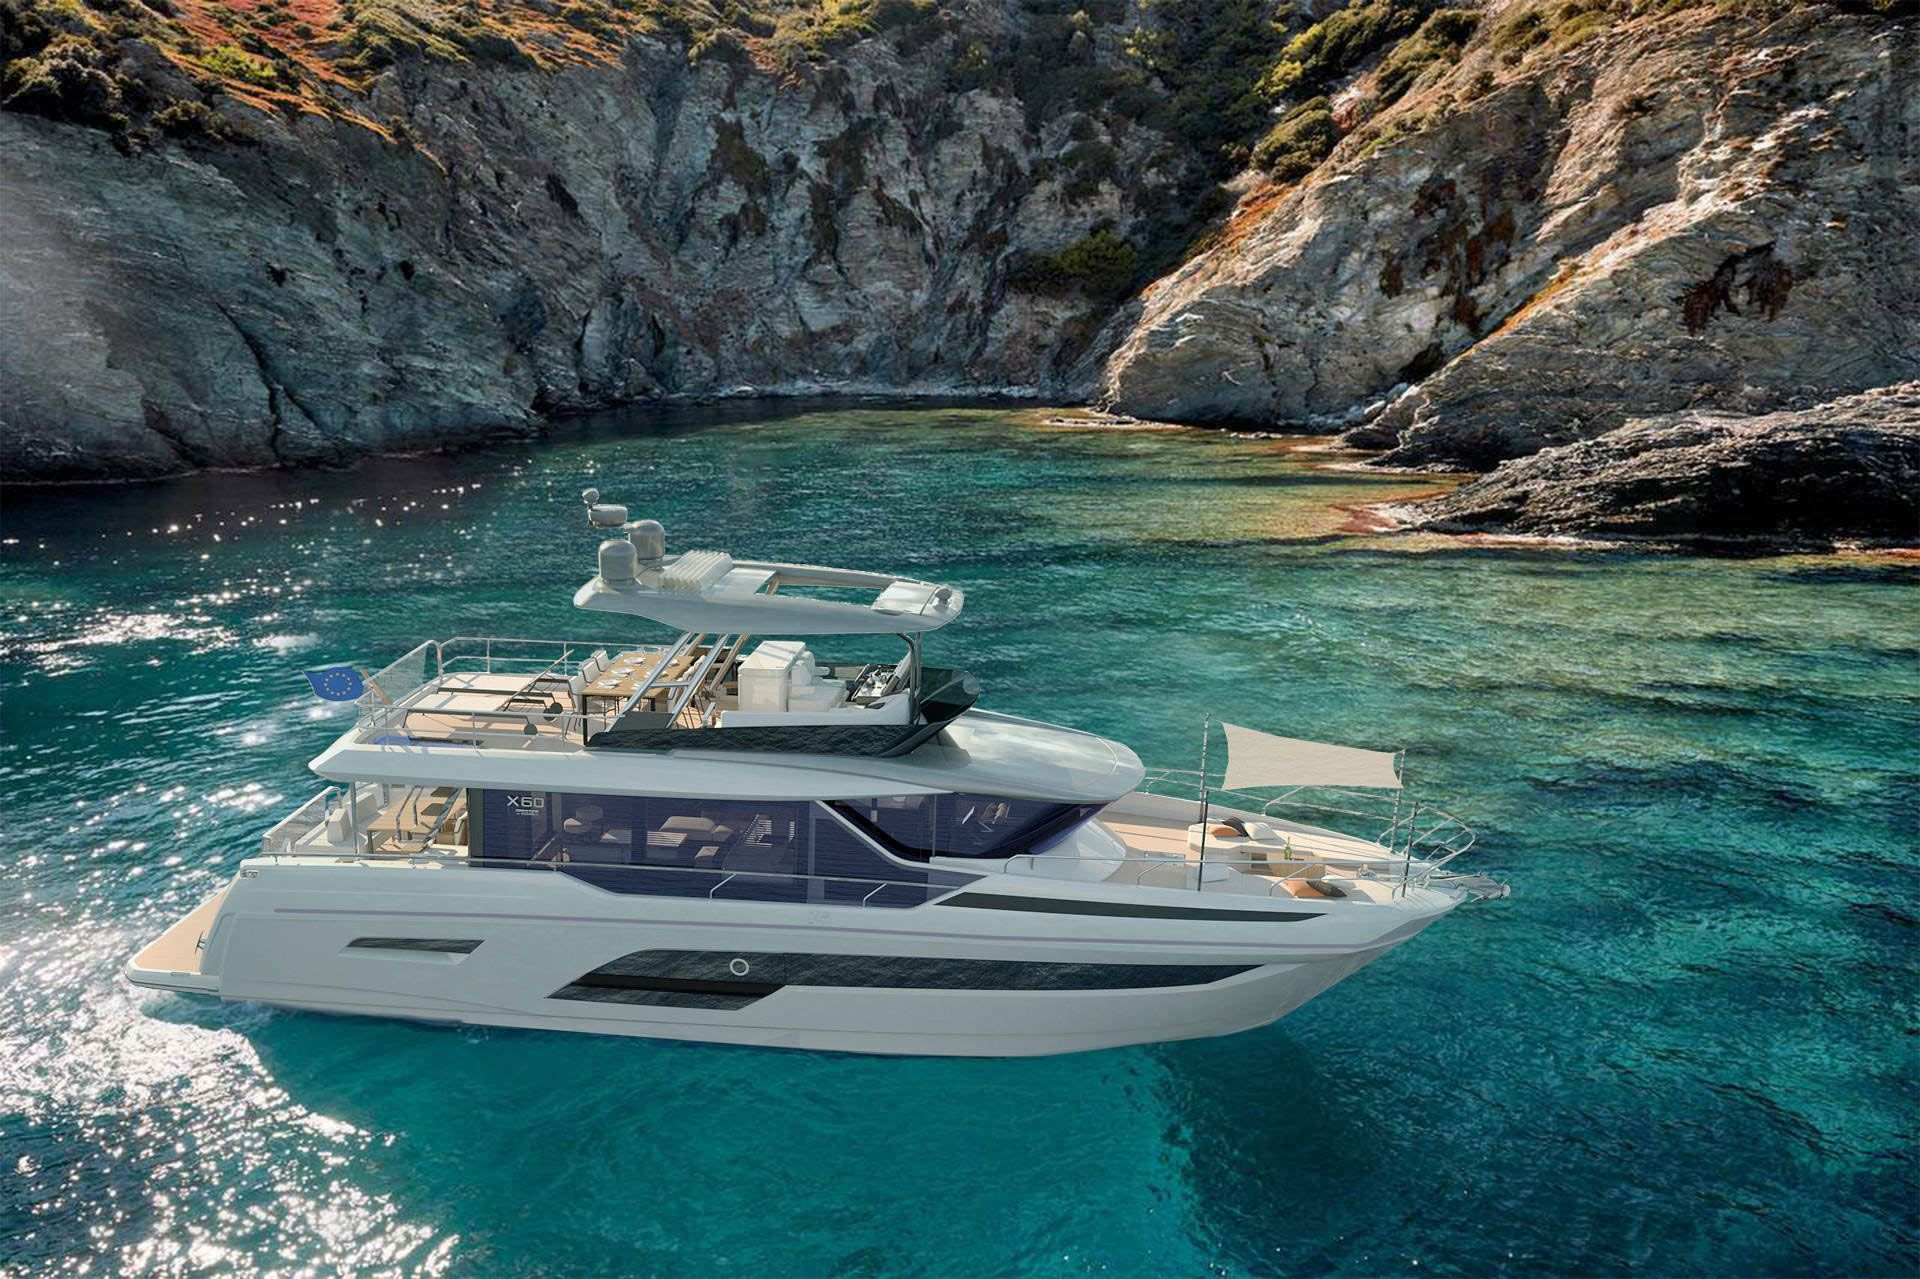 The Prestige X60 can be outfitted with three guest staterooms, two or three heads and a captain's cabin aft. The yacht is slated to debut at the Miami International Boat Show.